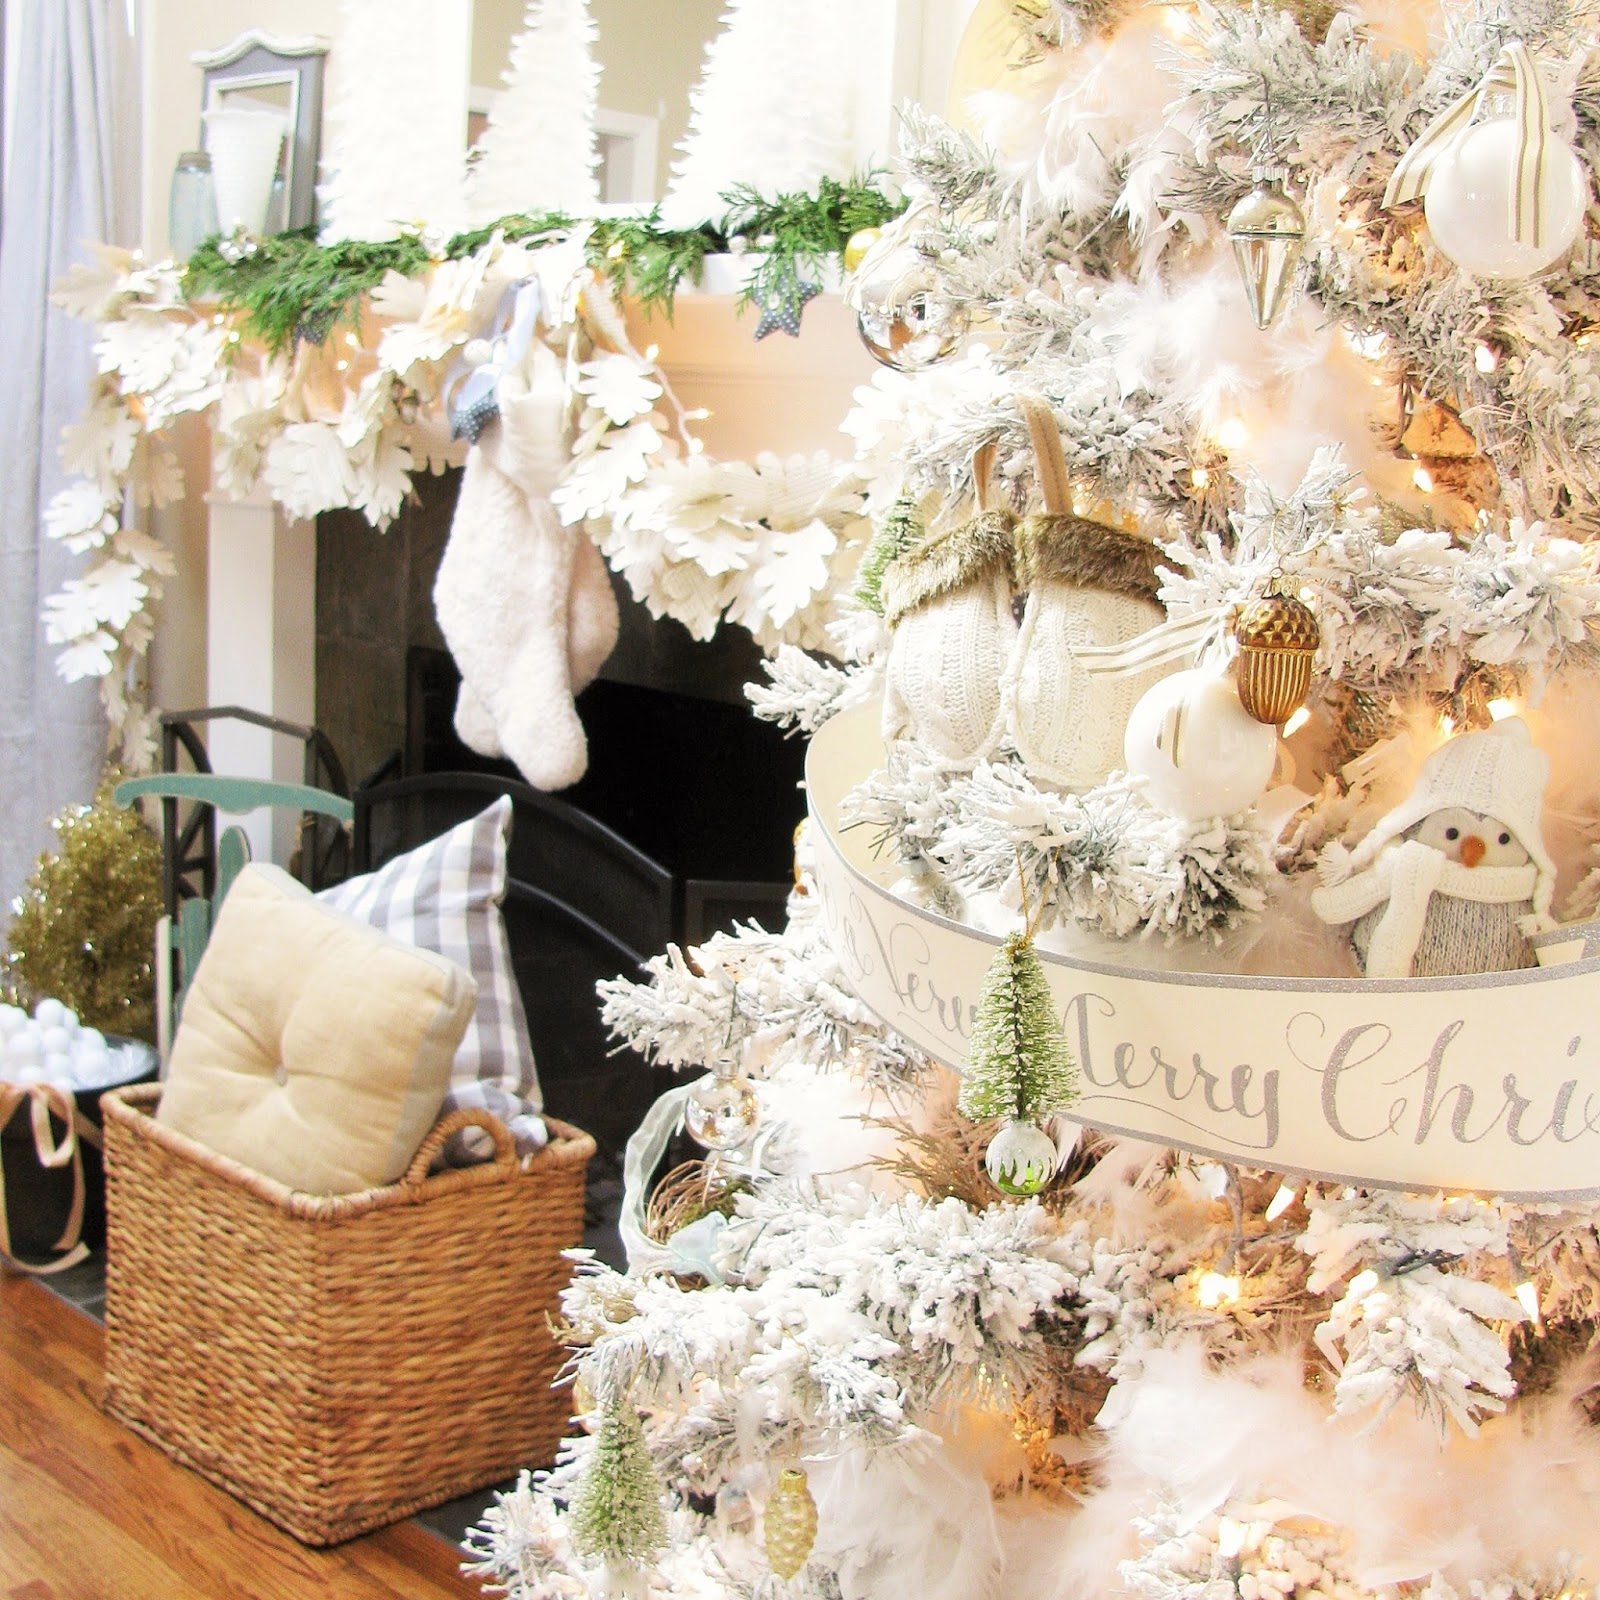 Christmas Decorations: A Holiday Home Tour